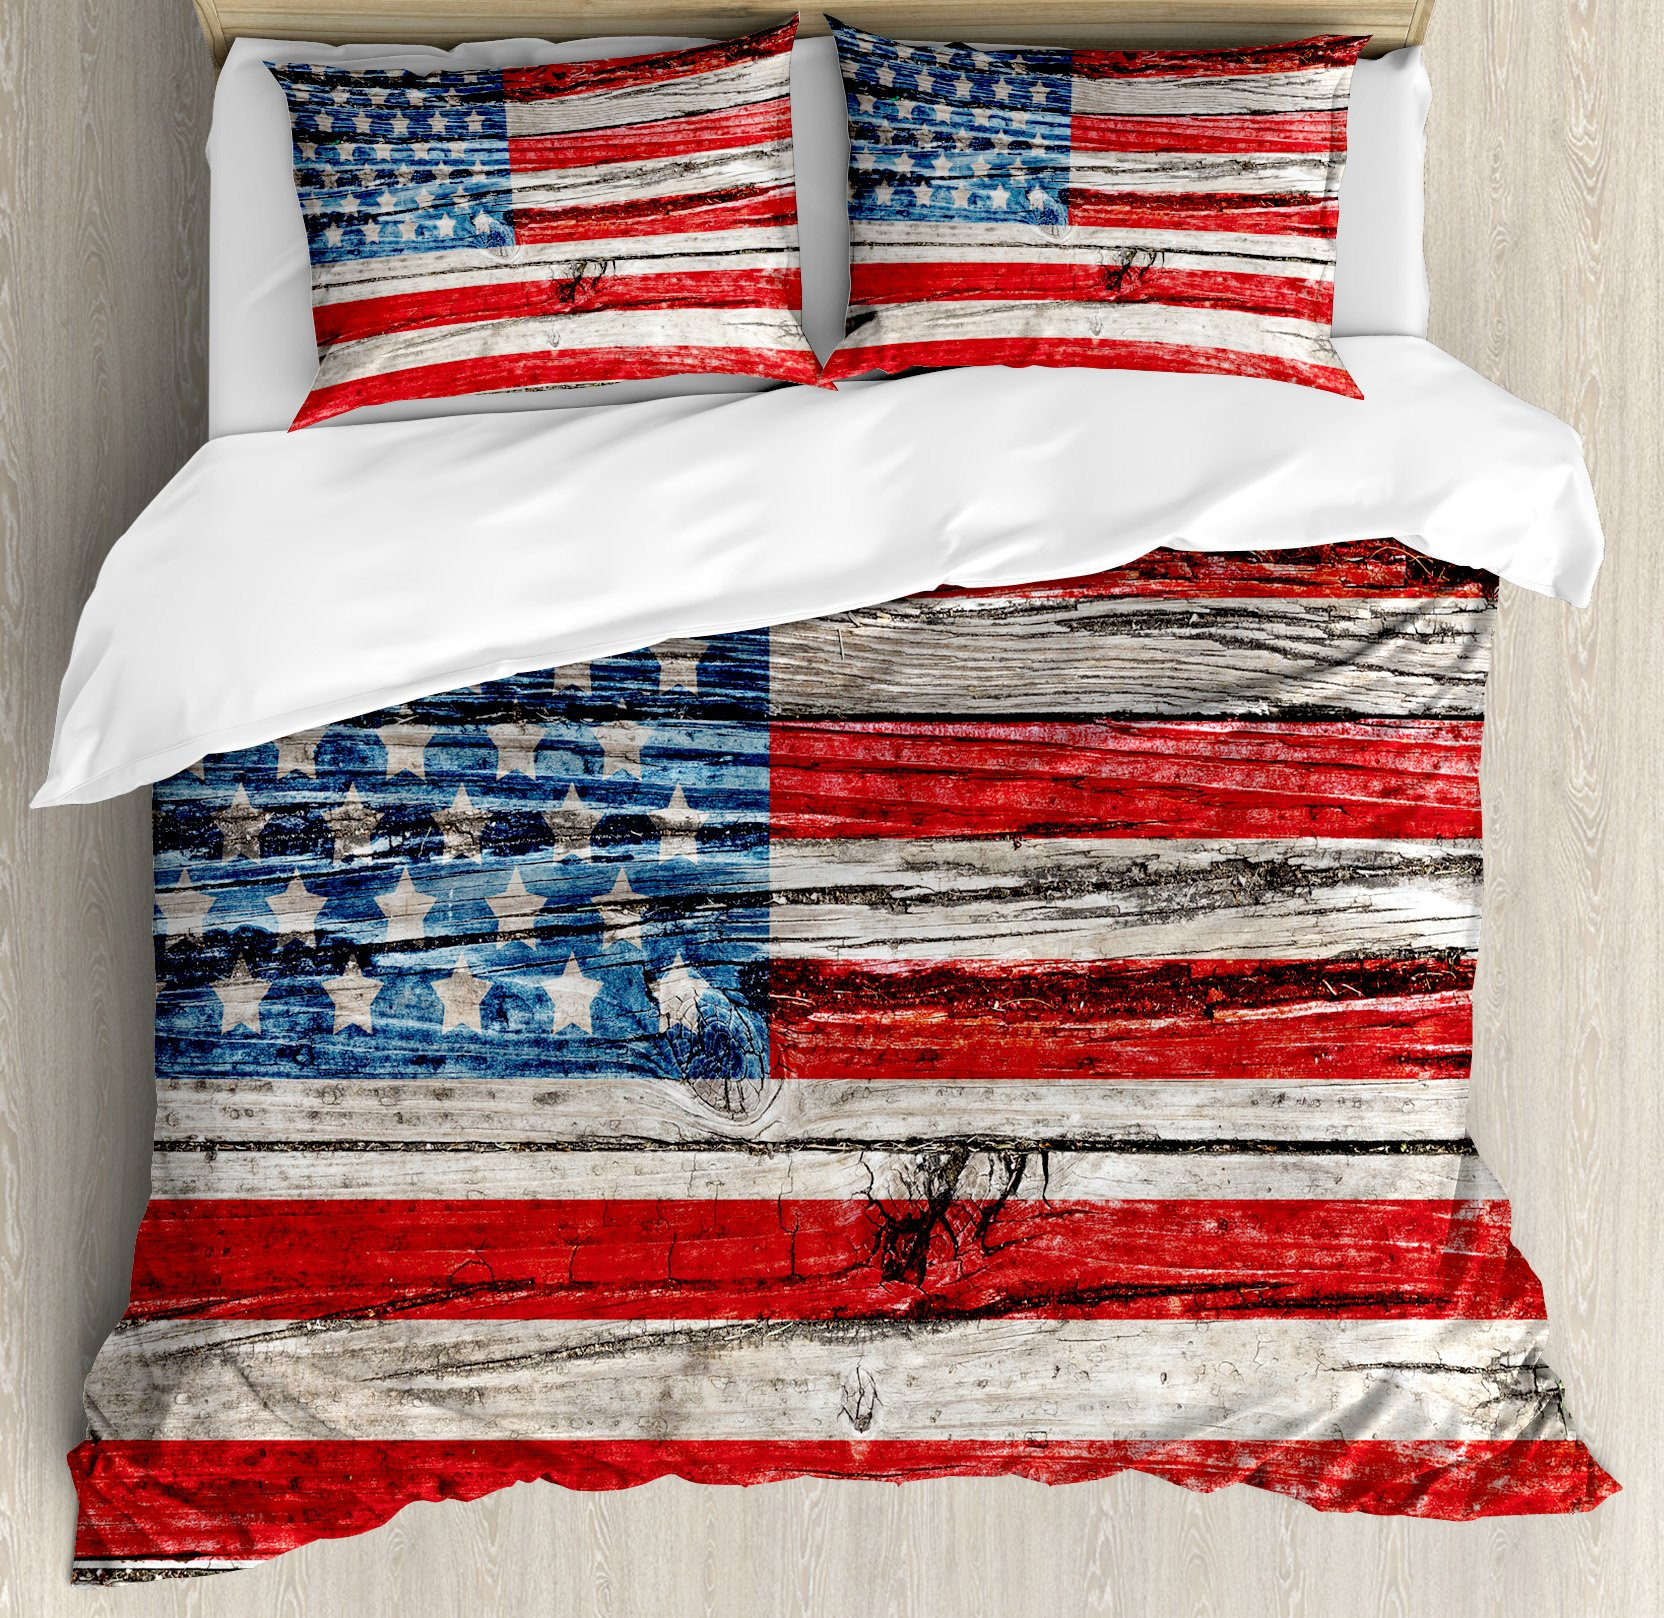 Ambesonne Rustic American USA Flag Duvet Cover Set Queen Size by, Fourth of July Independence Day Painted Wooden panel Wall Looking Image Freedom, Decorative 3 Piece Bedding Set with 2 Pillow Shams